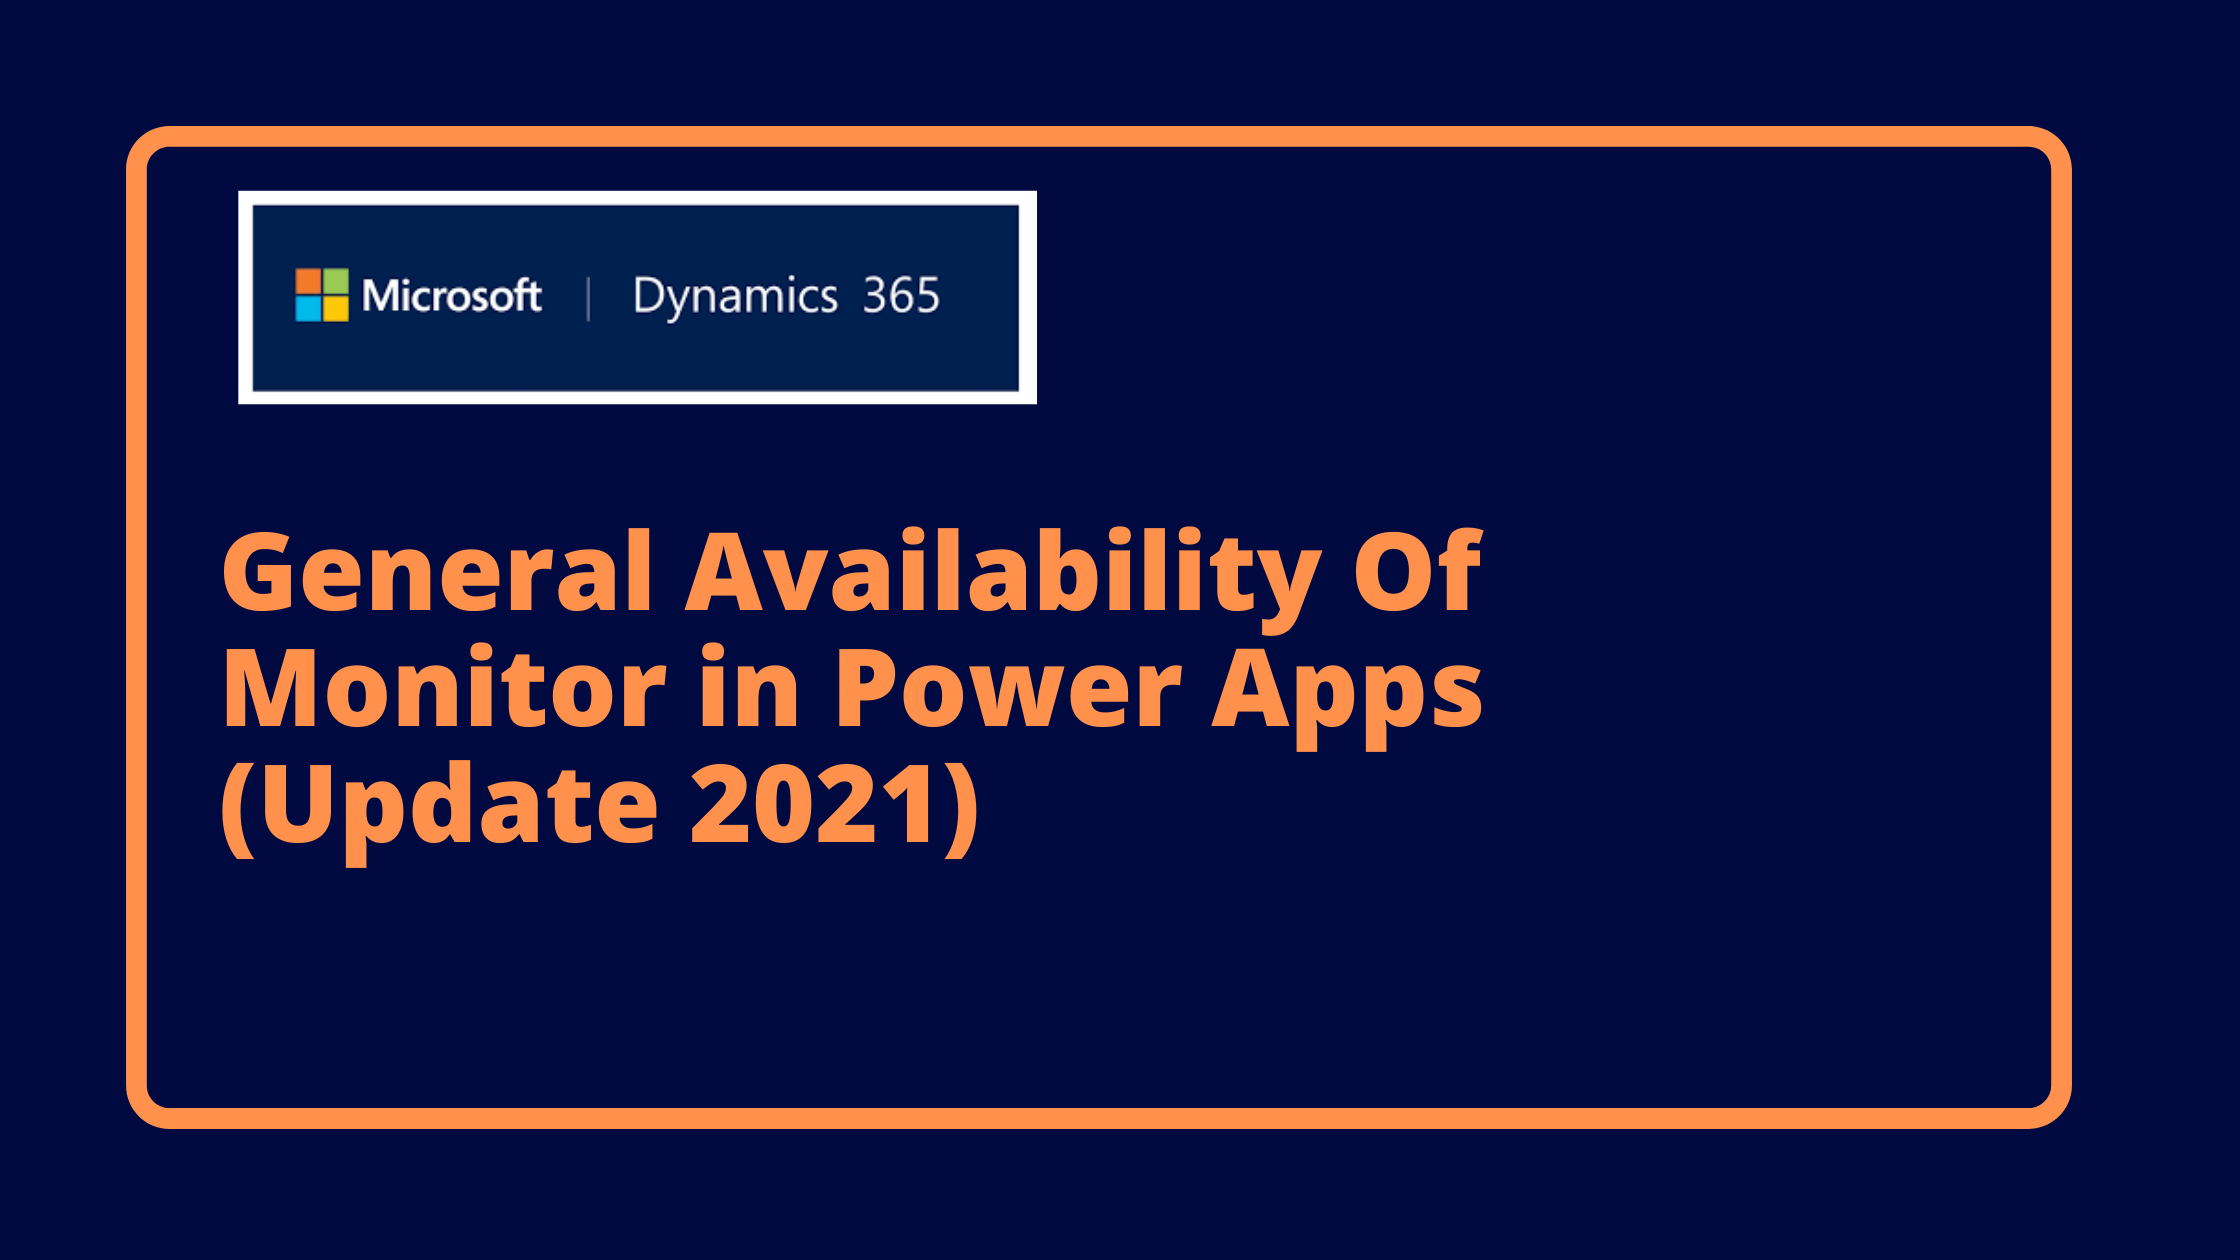 General Availability Of Monitor in Power Apps (Update 2021)